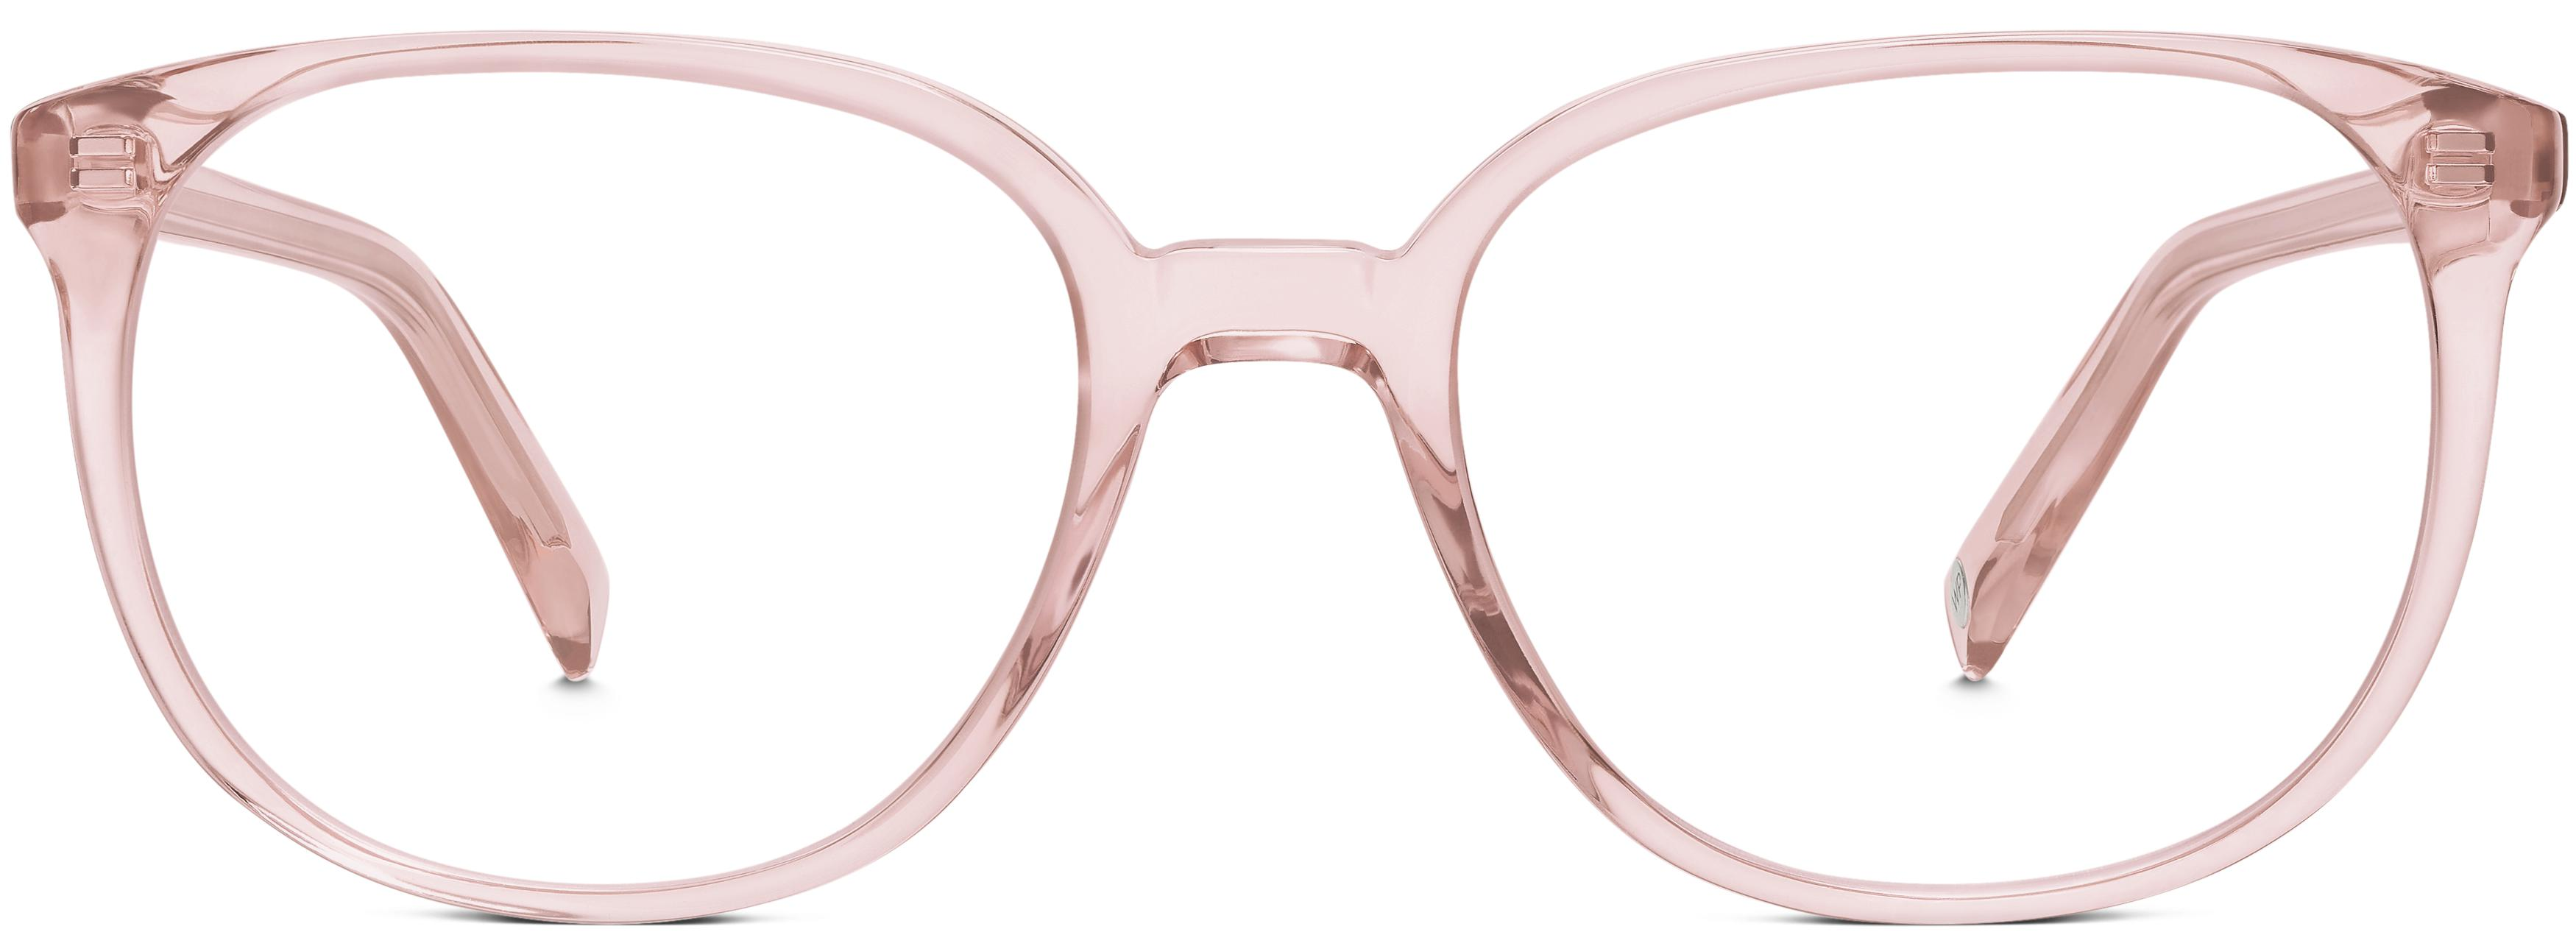 cd522238a3 Women s Eyeglasses